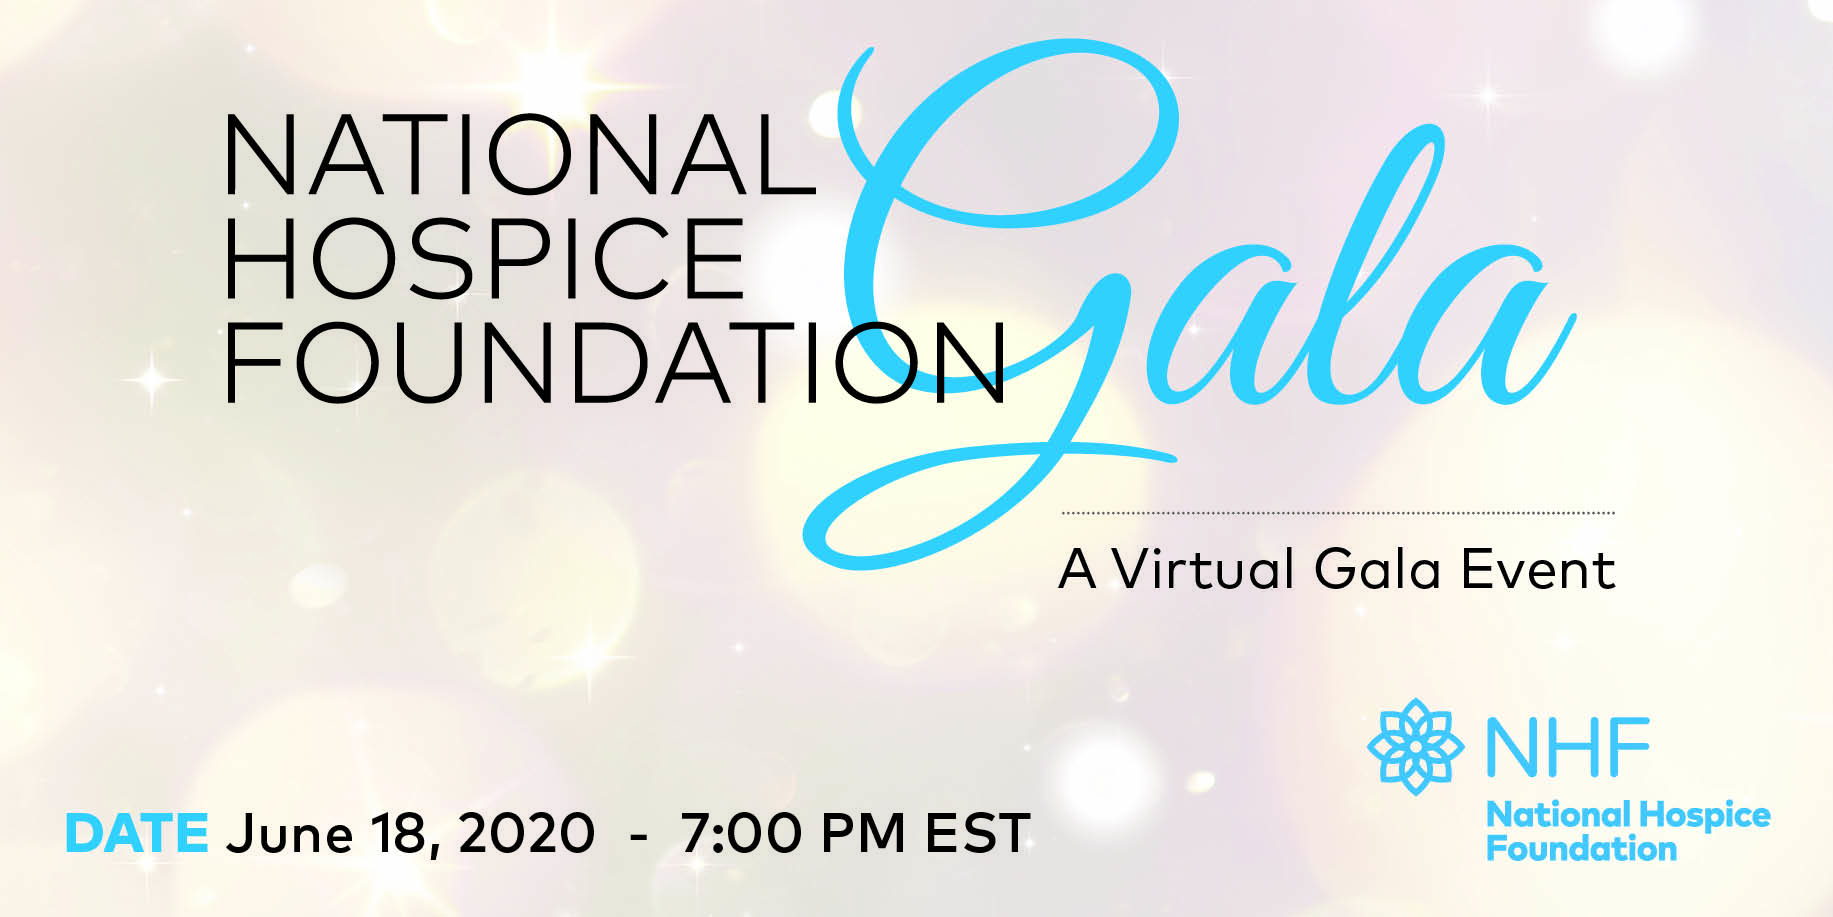 NHF Virtual Gala to Support Hospice Community